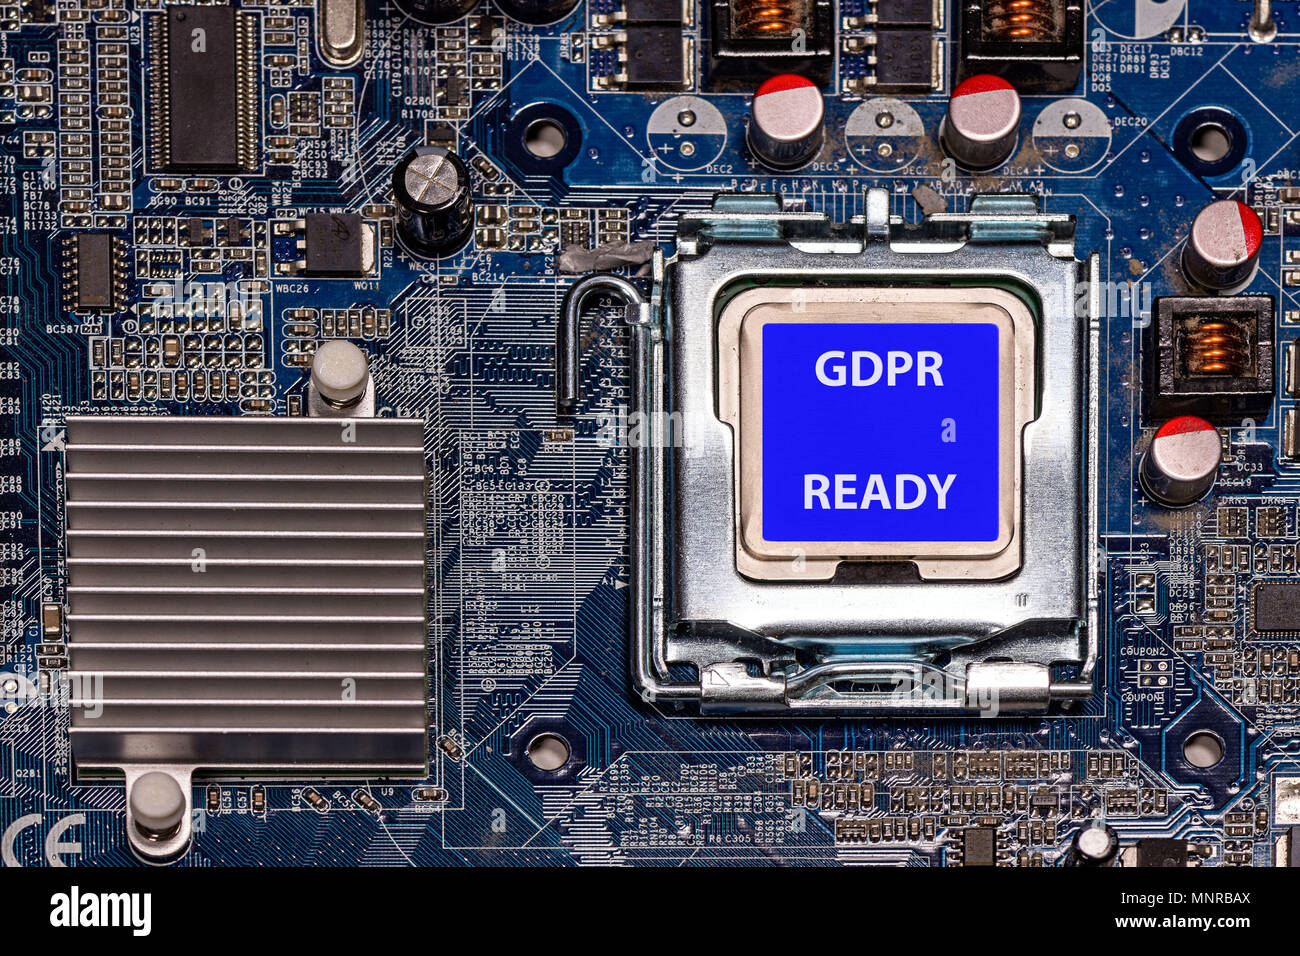 Close-up CPU with label GDPR READY on computer mother board - Stock Image